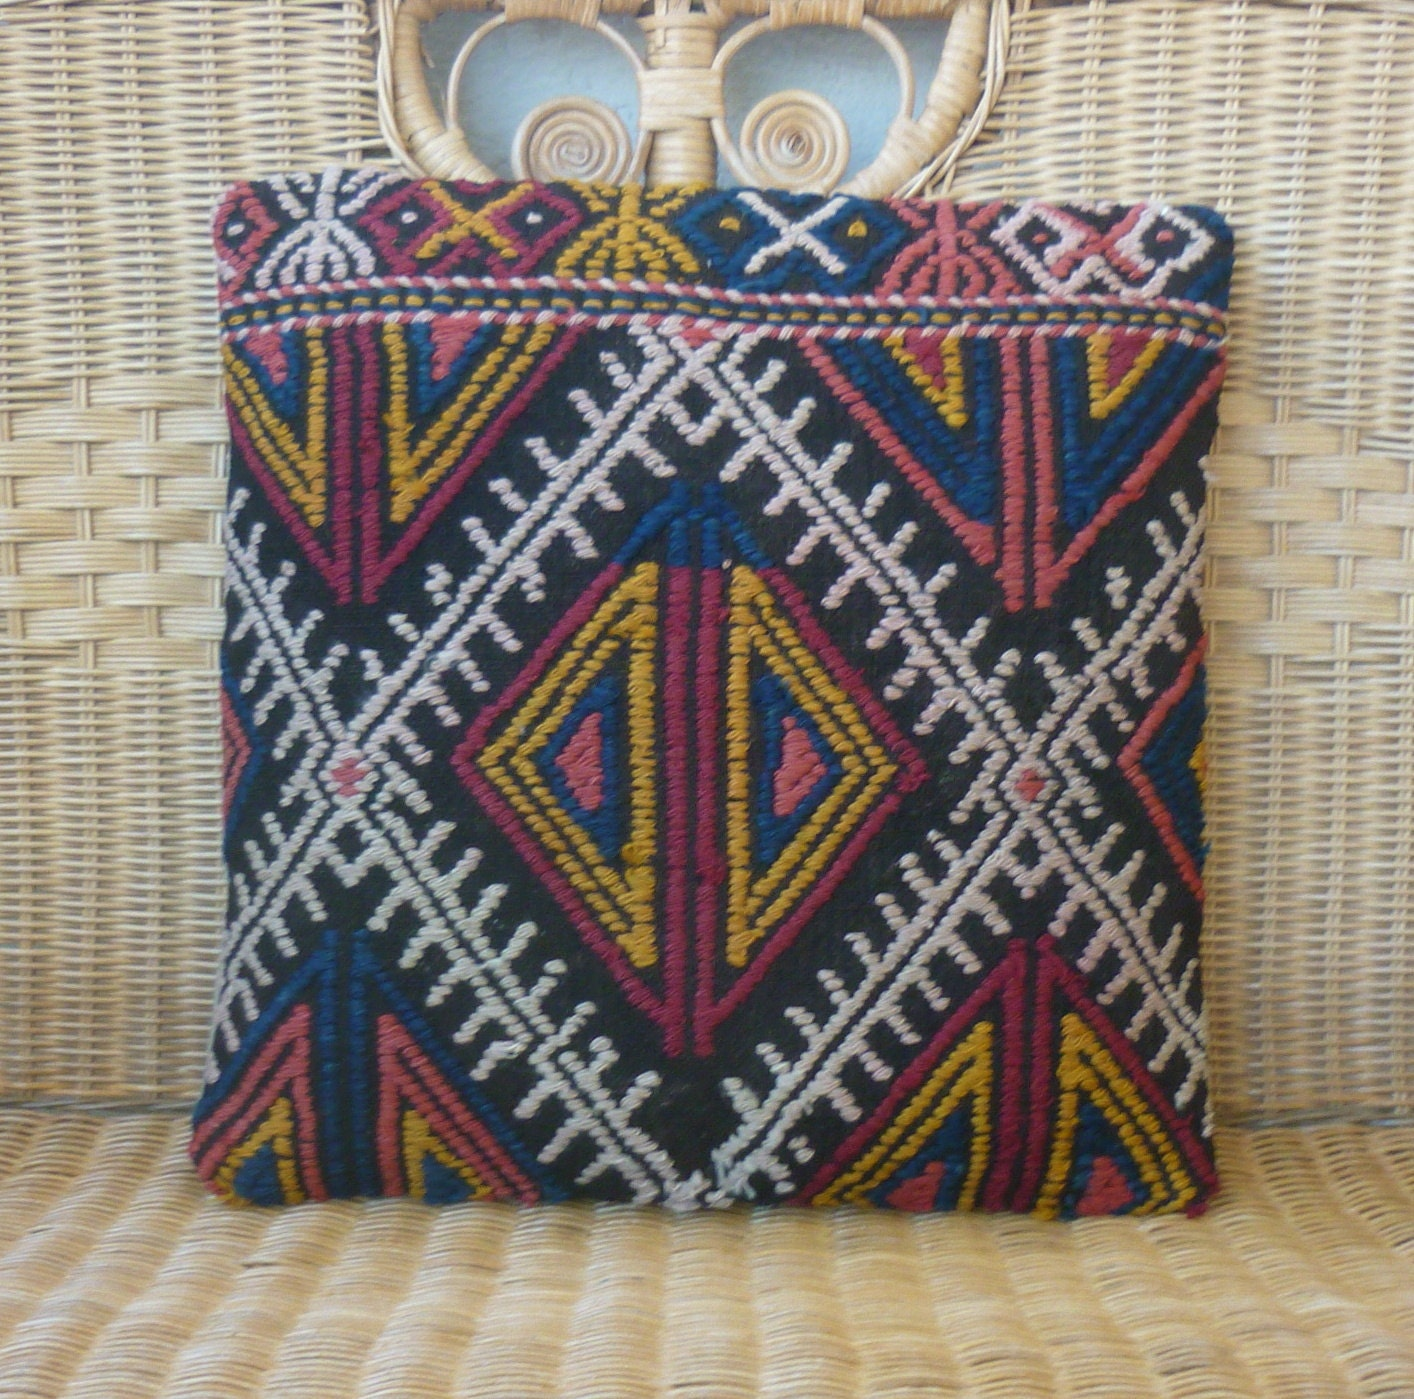 "MODERN Bohemian Home Decor ,Turkish Wool Kilim Pillow Cover 16""x16"",Tribal Pillow,Vintage Kilim Pillow,Kilim Ebroidery Pillow,Throw Pillow."